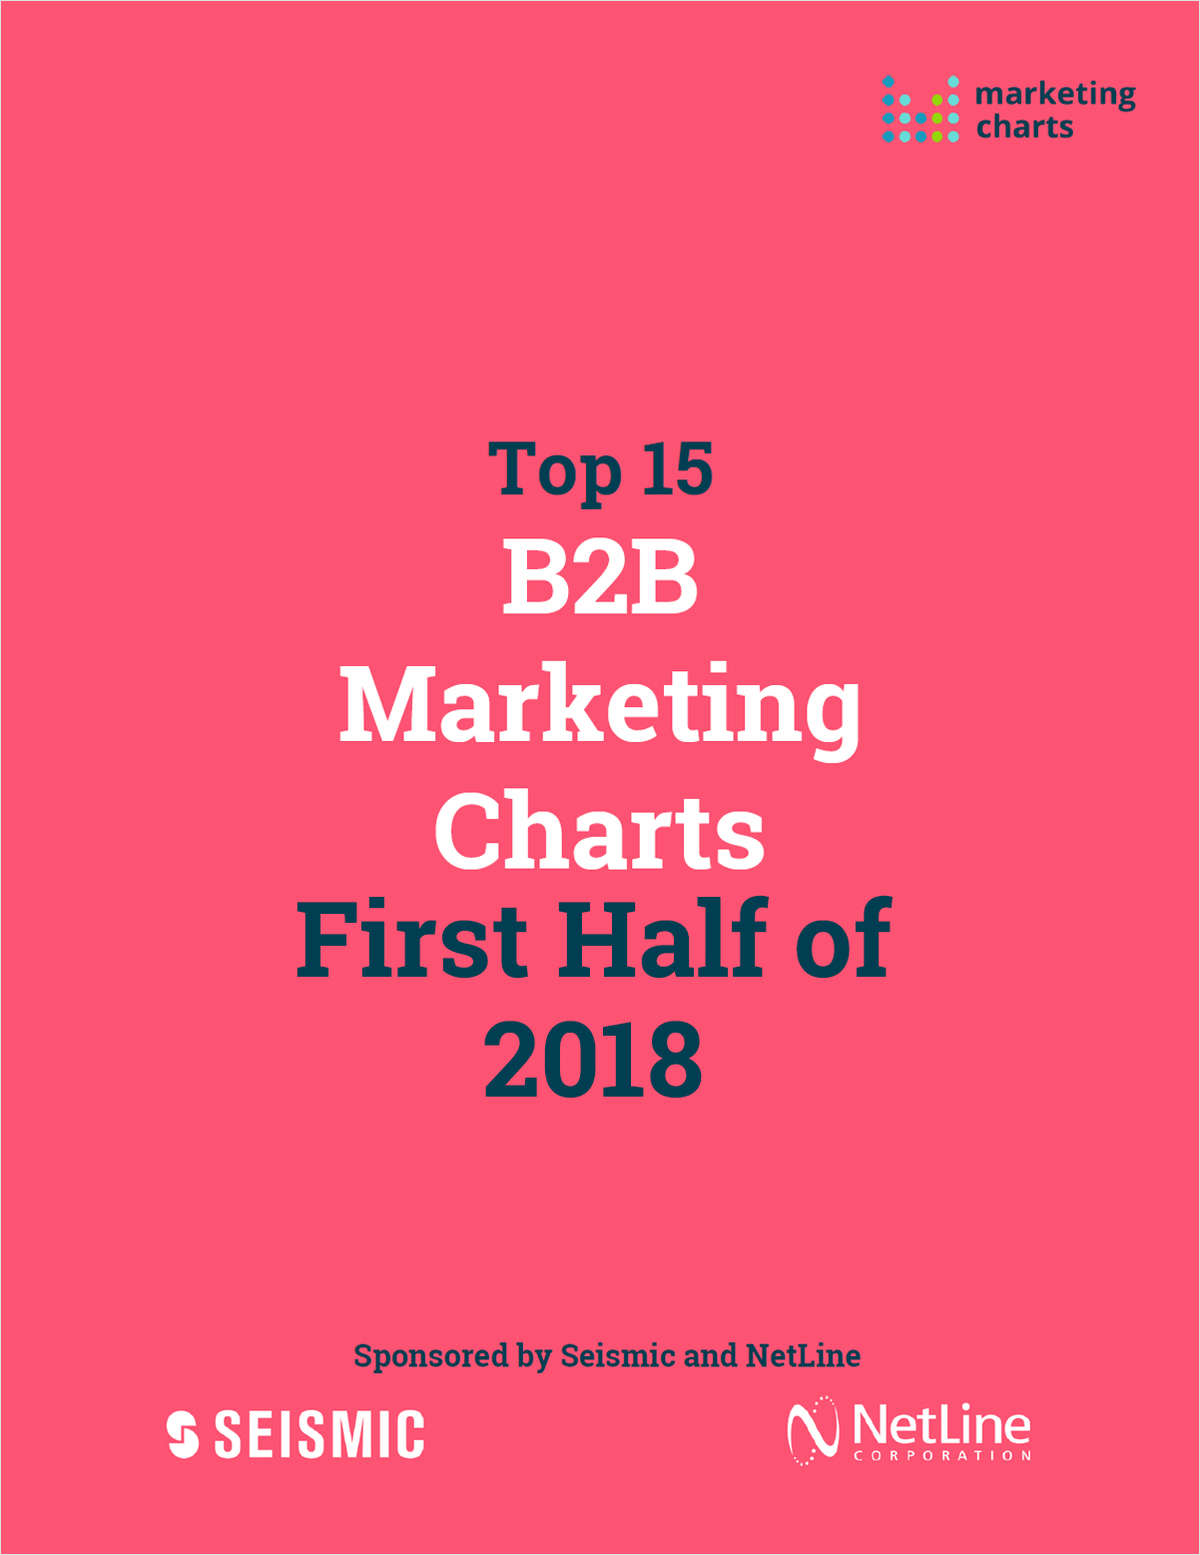 Top 15 B2B Marketing Charts for the 1st Half of 2018